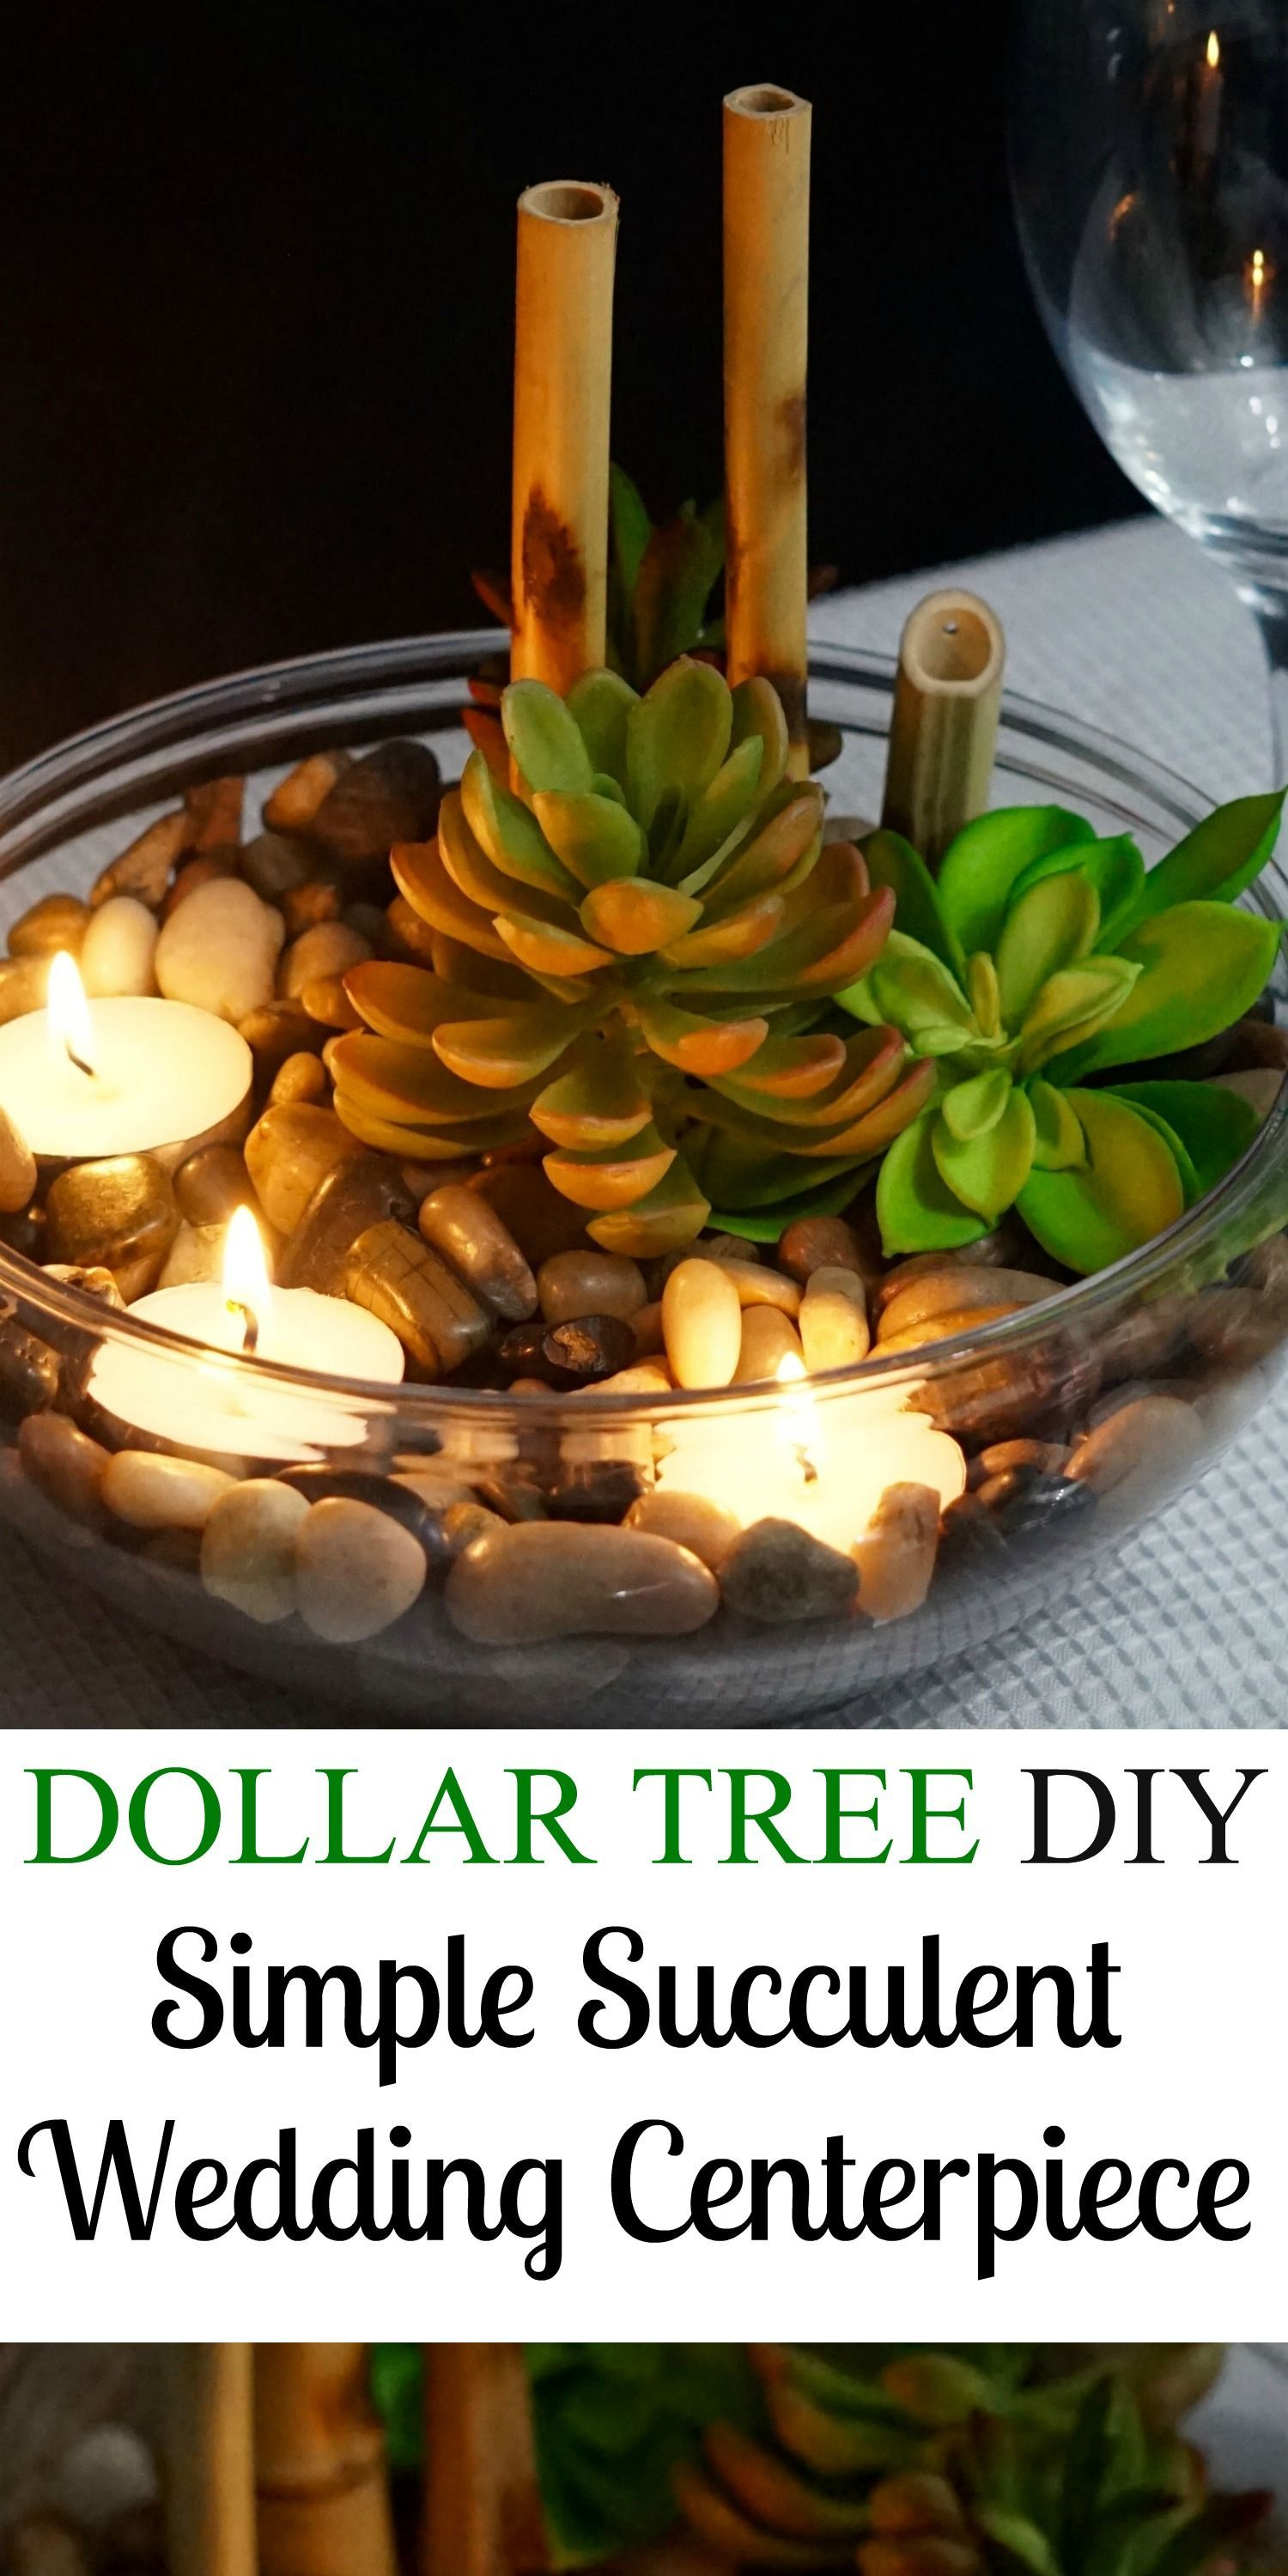 Dollar tree simply succulent centerpiece perfect for your event or